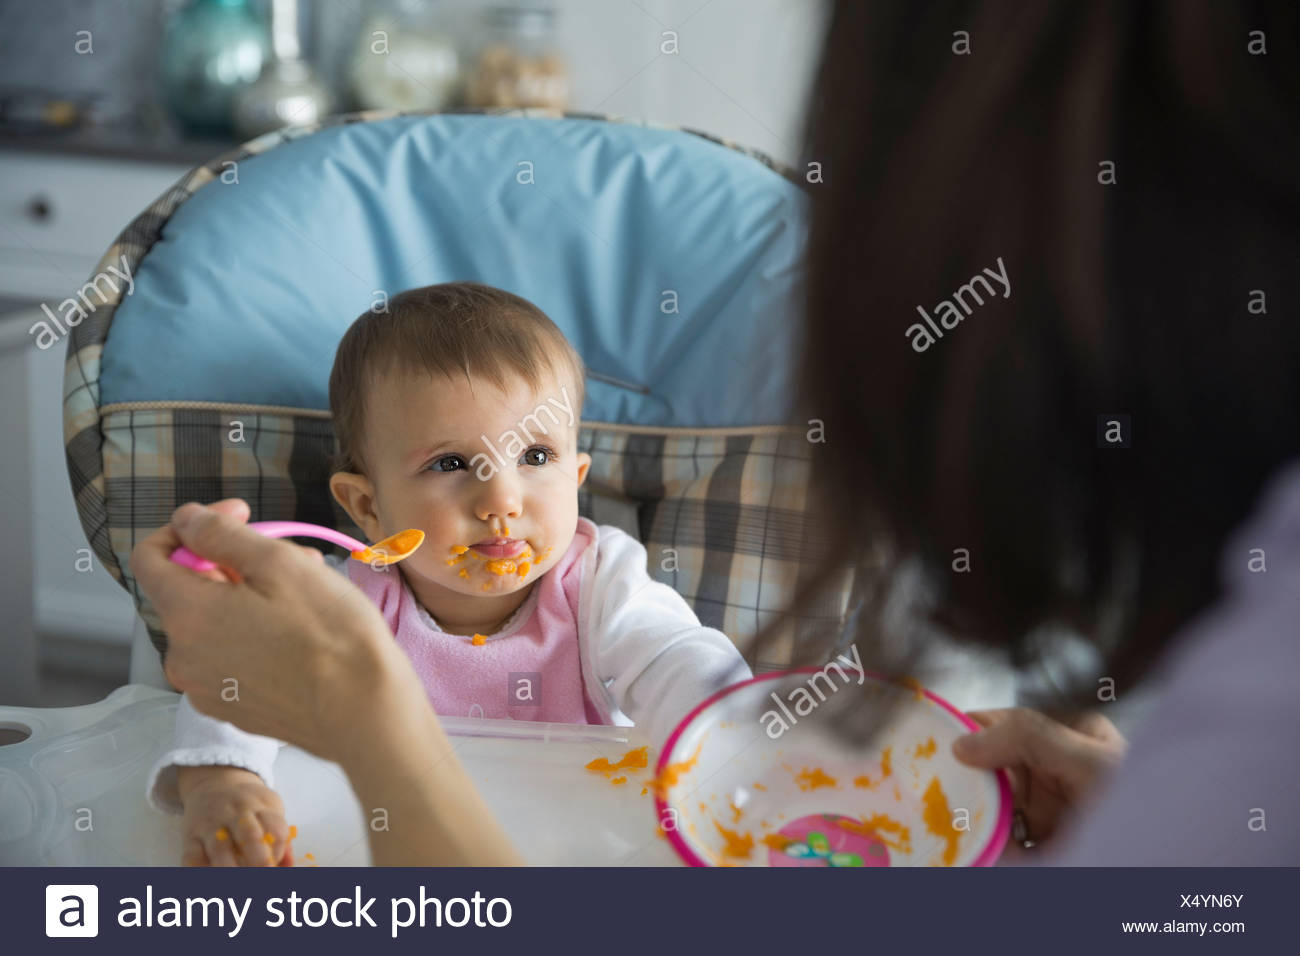 Cute baby girl being fed by mother at home - Stock Image